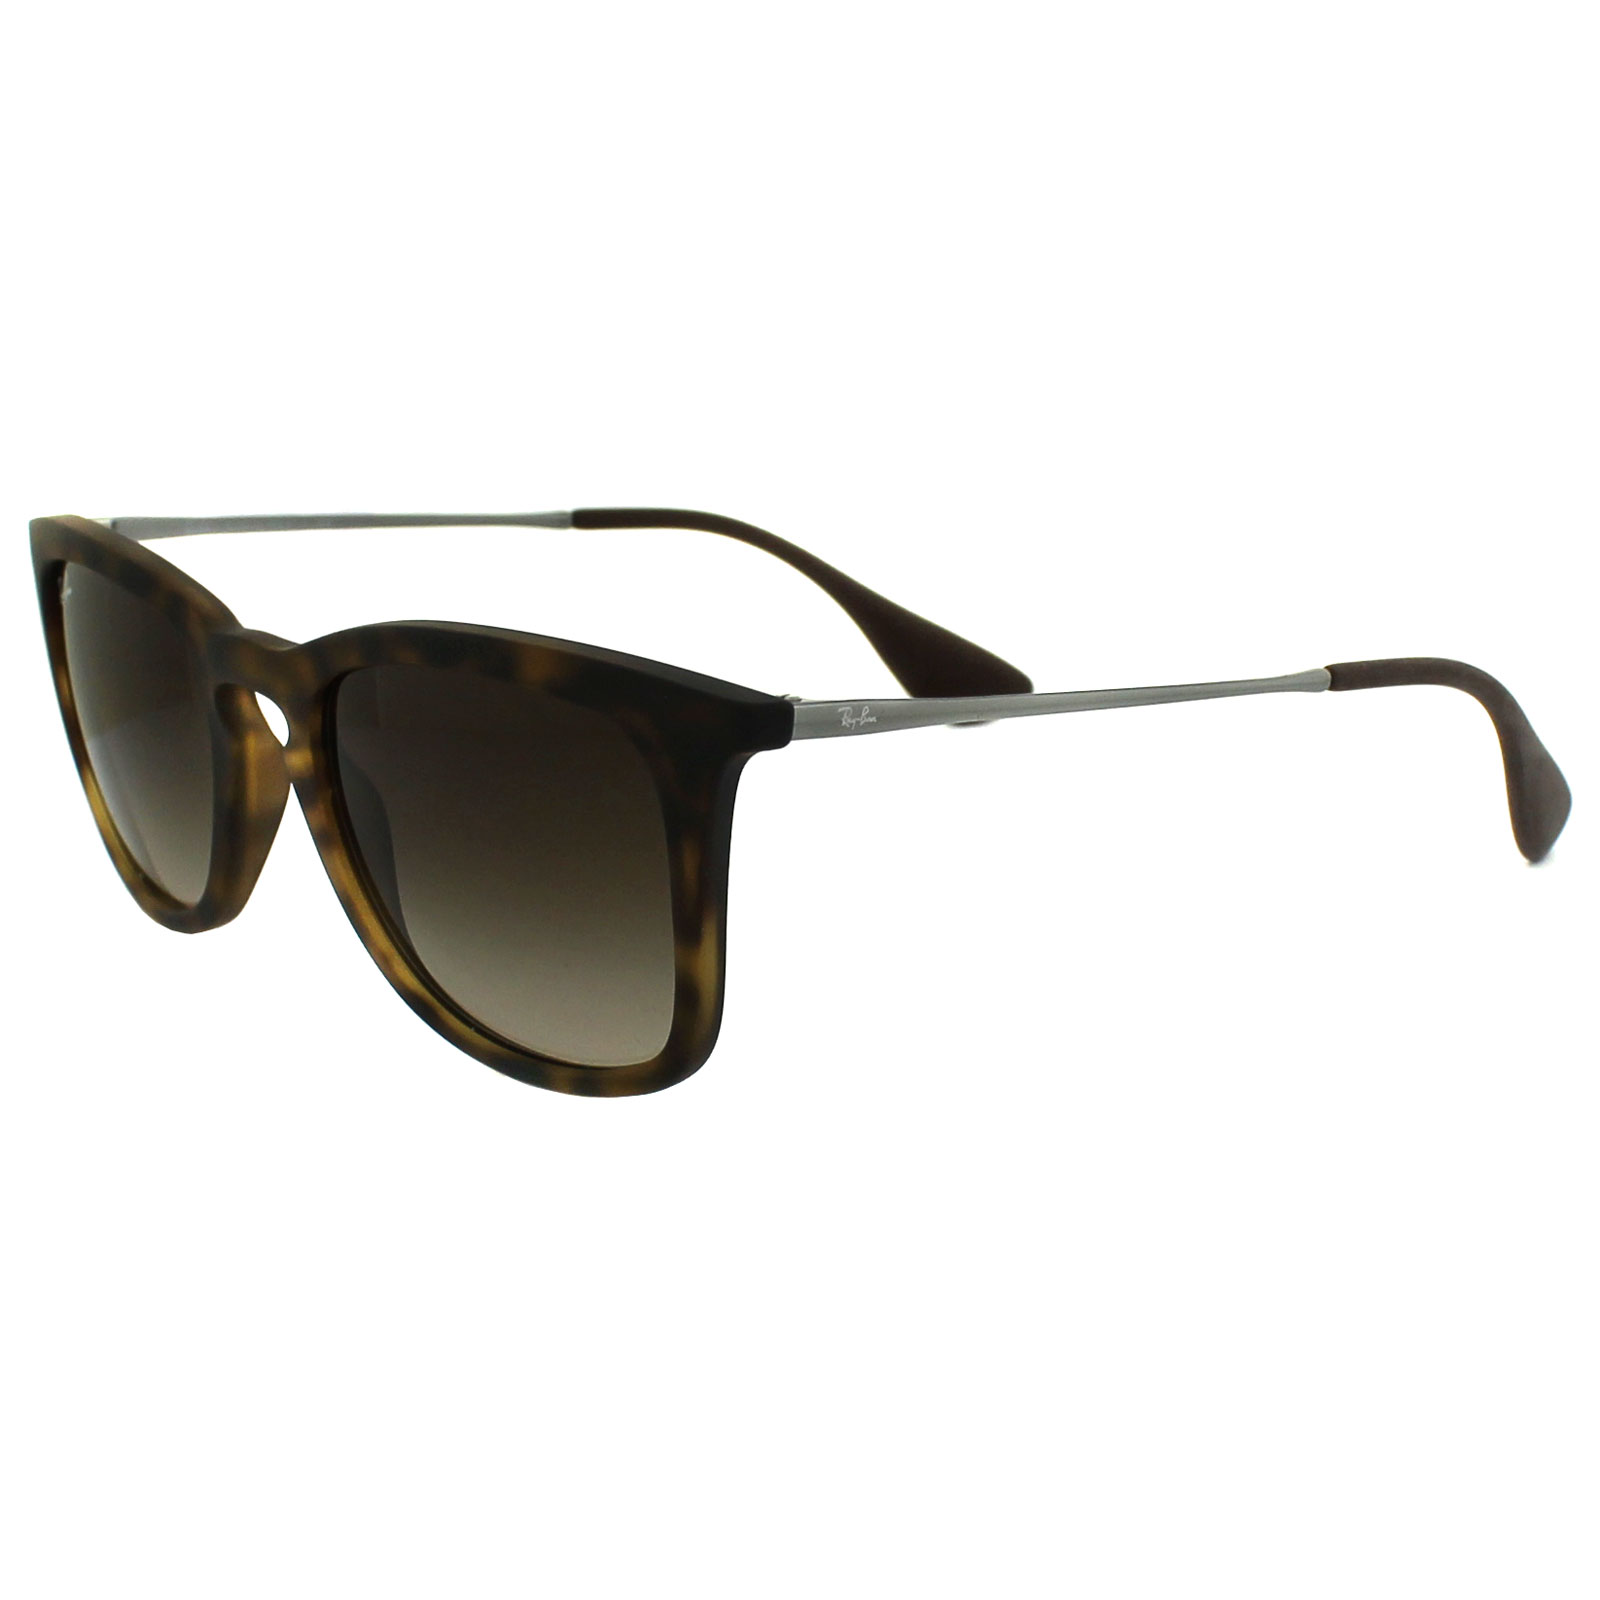 86513 Rubber Ray Ban Details Brown About Sunglasses Tortoise 4221 Gradient E2IH9DWY